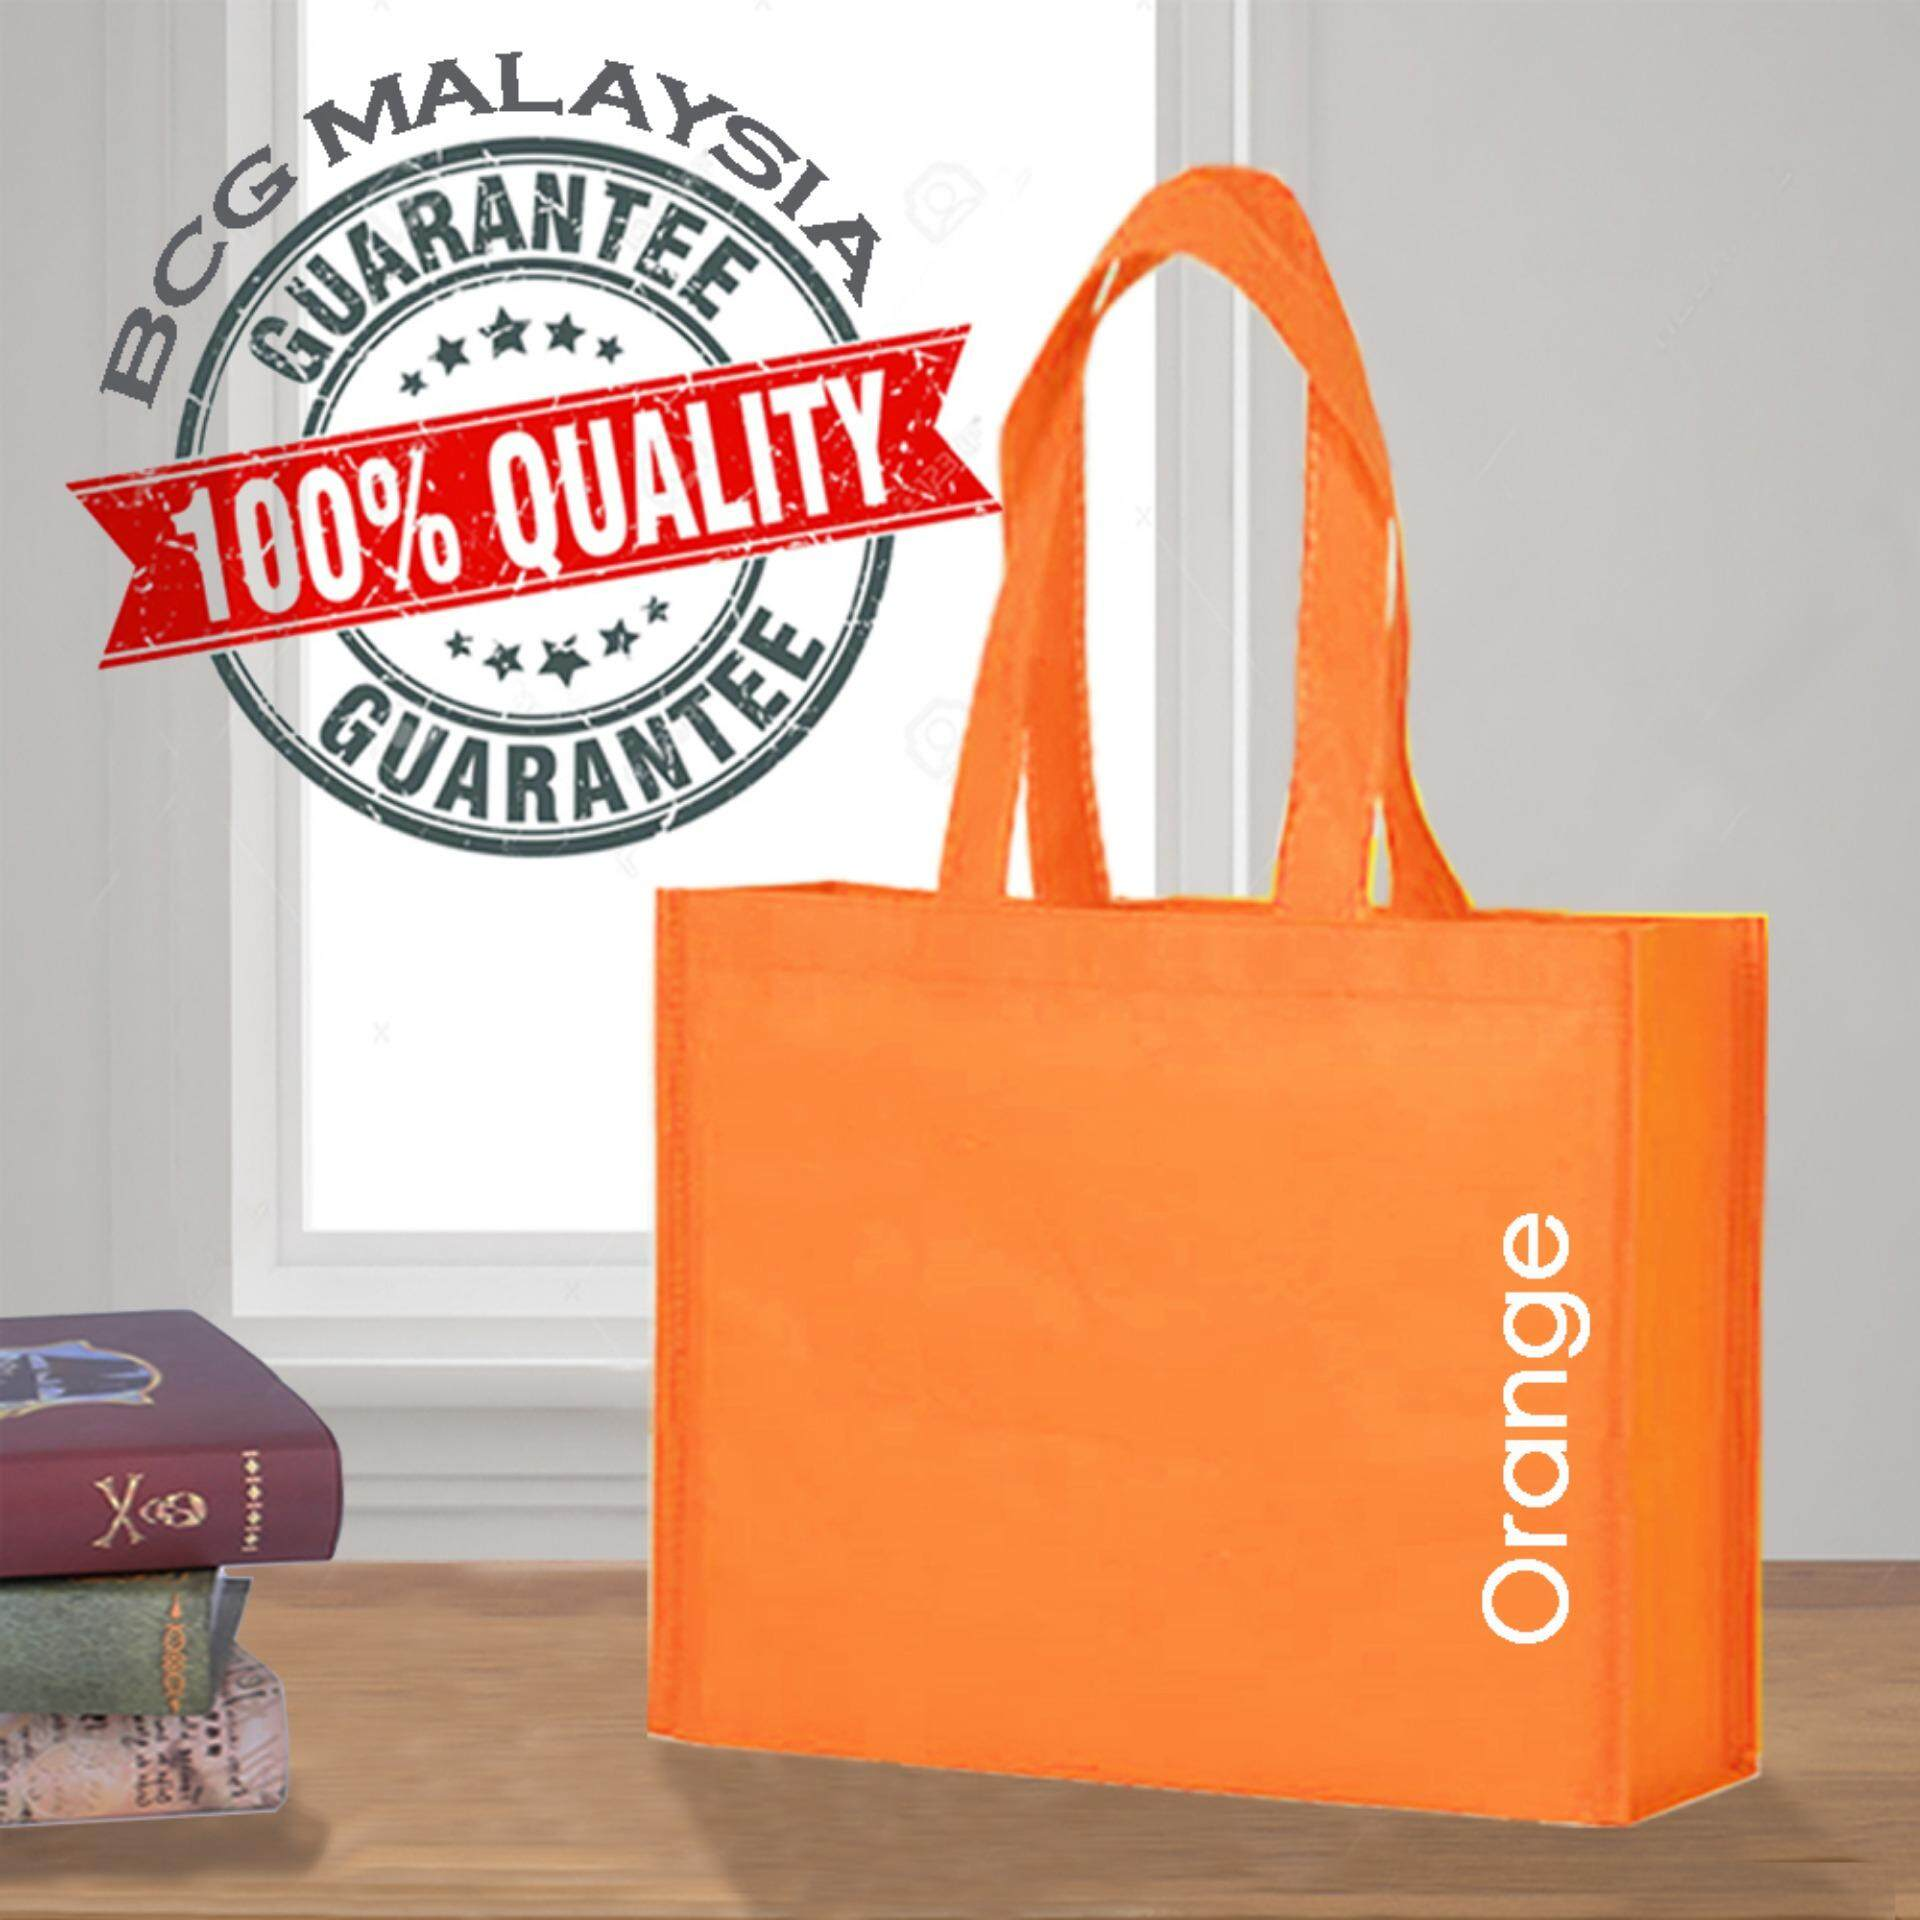 [Ready Stock] BCG Malaysia A3 Orange Non Woven Bag Recycle Bag 100% Quality Assured